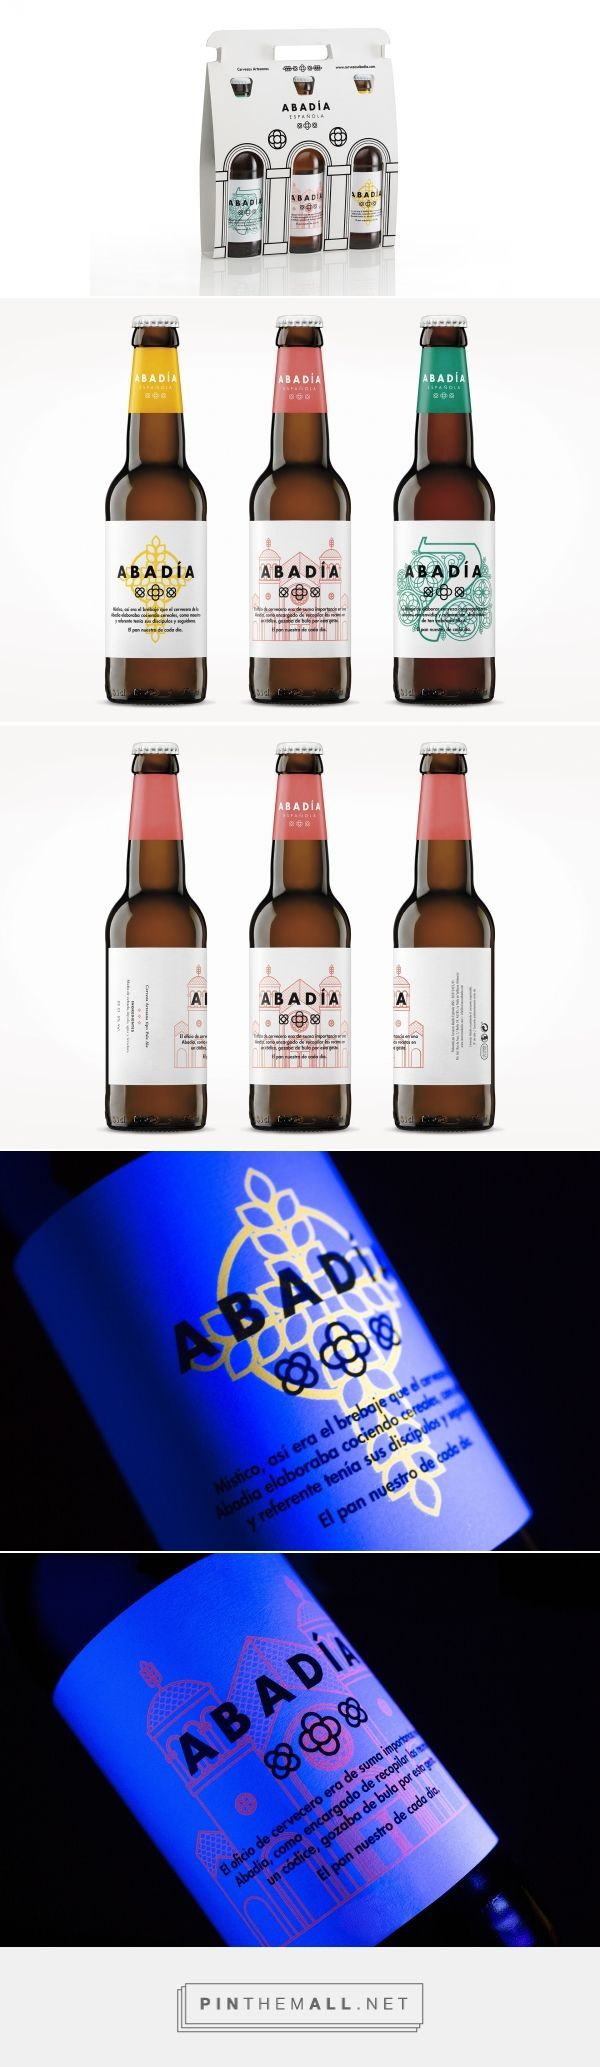 Abadía española. Creating a brand and a packaging for an artisan beer